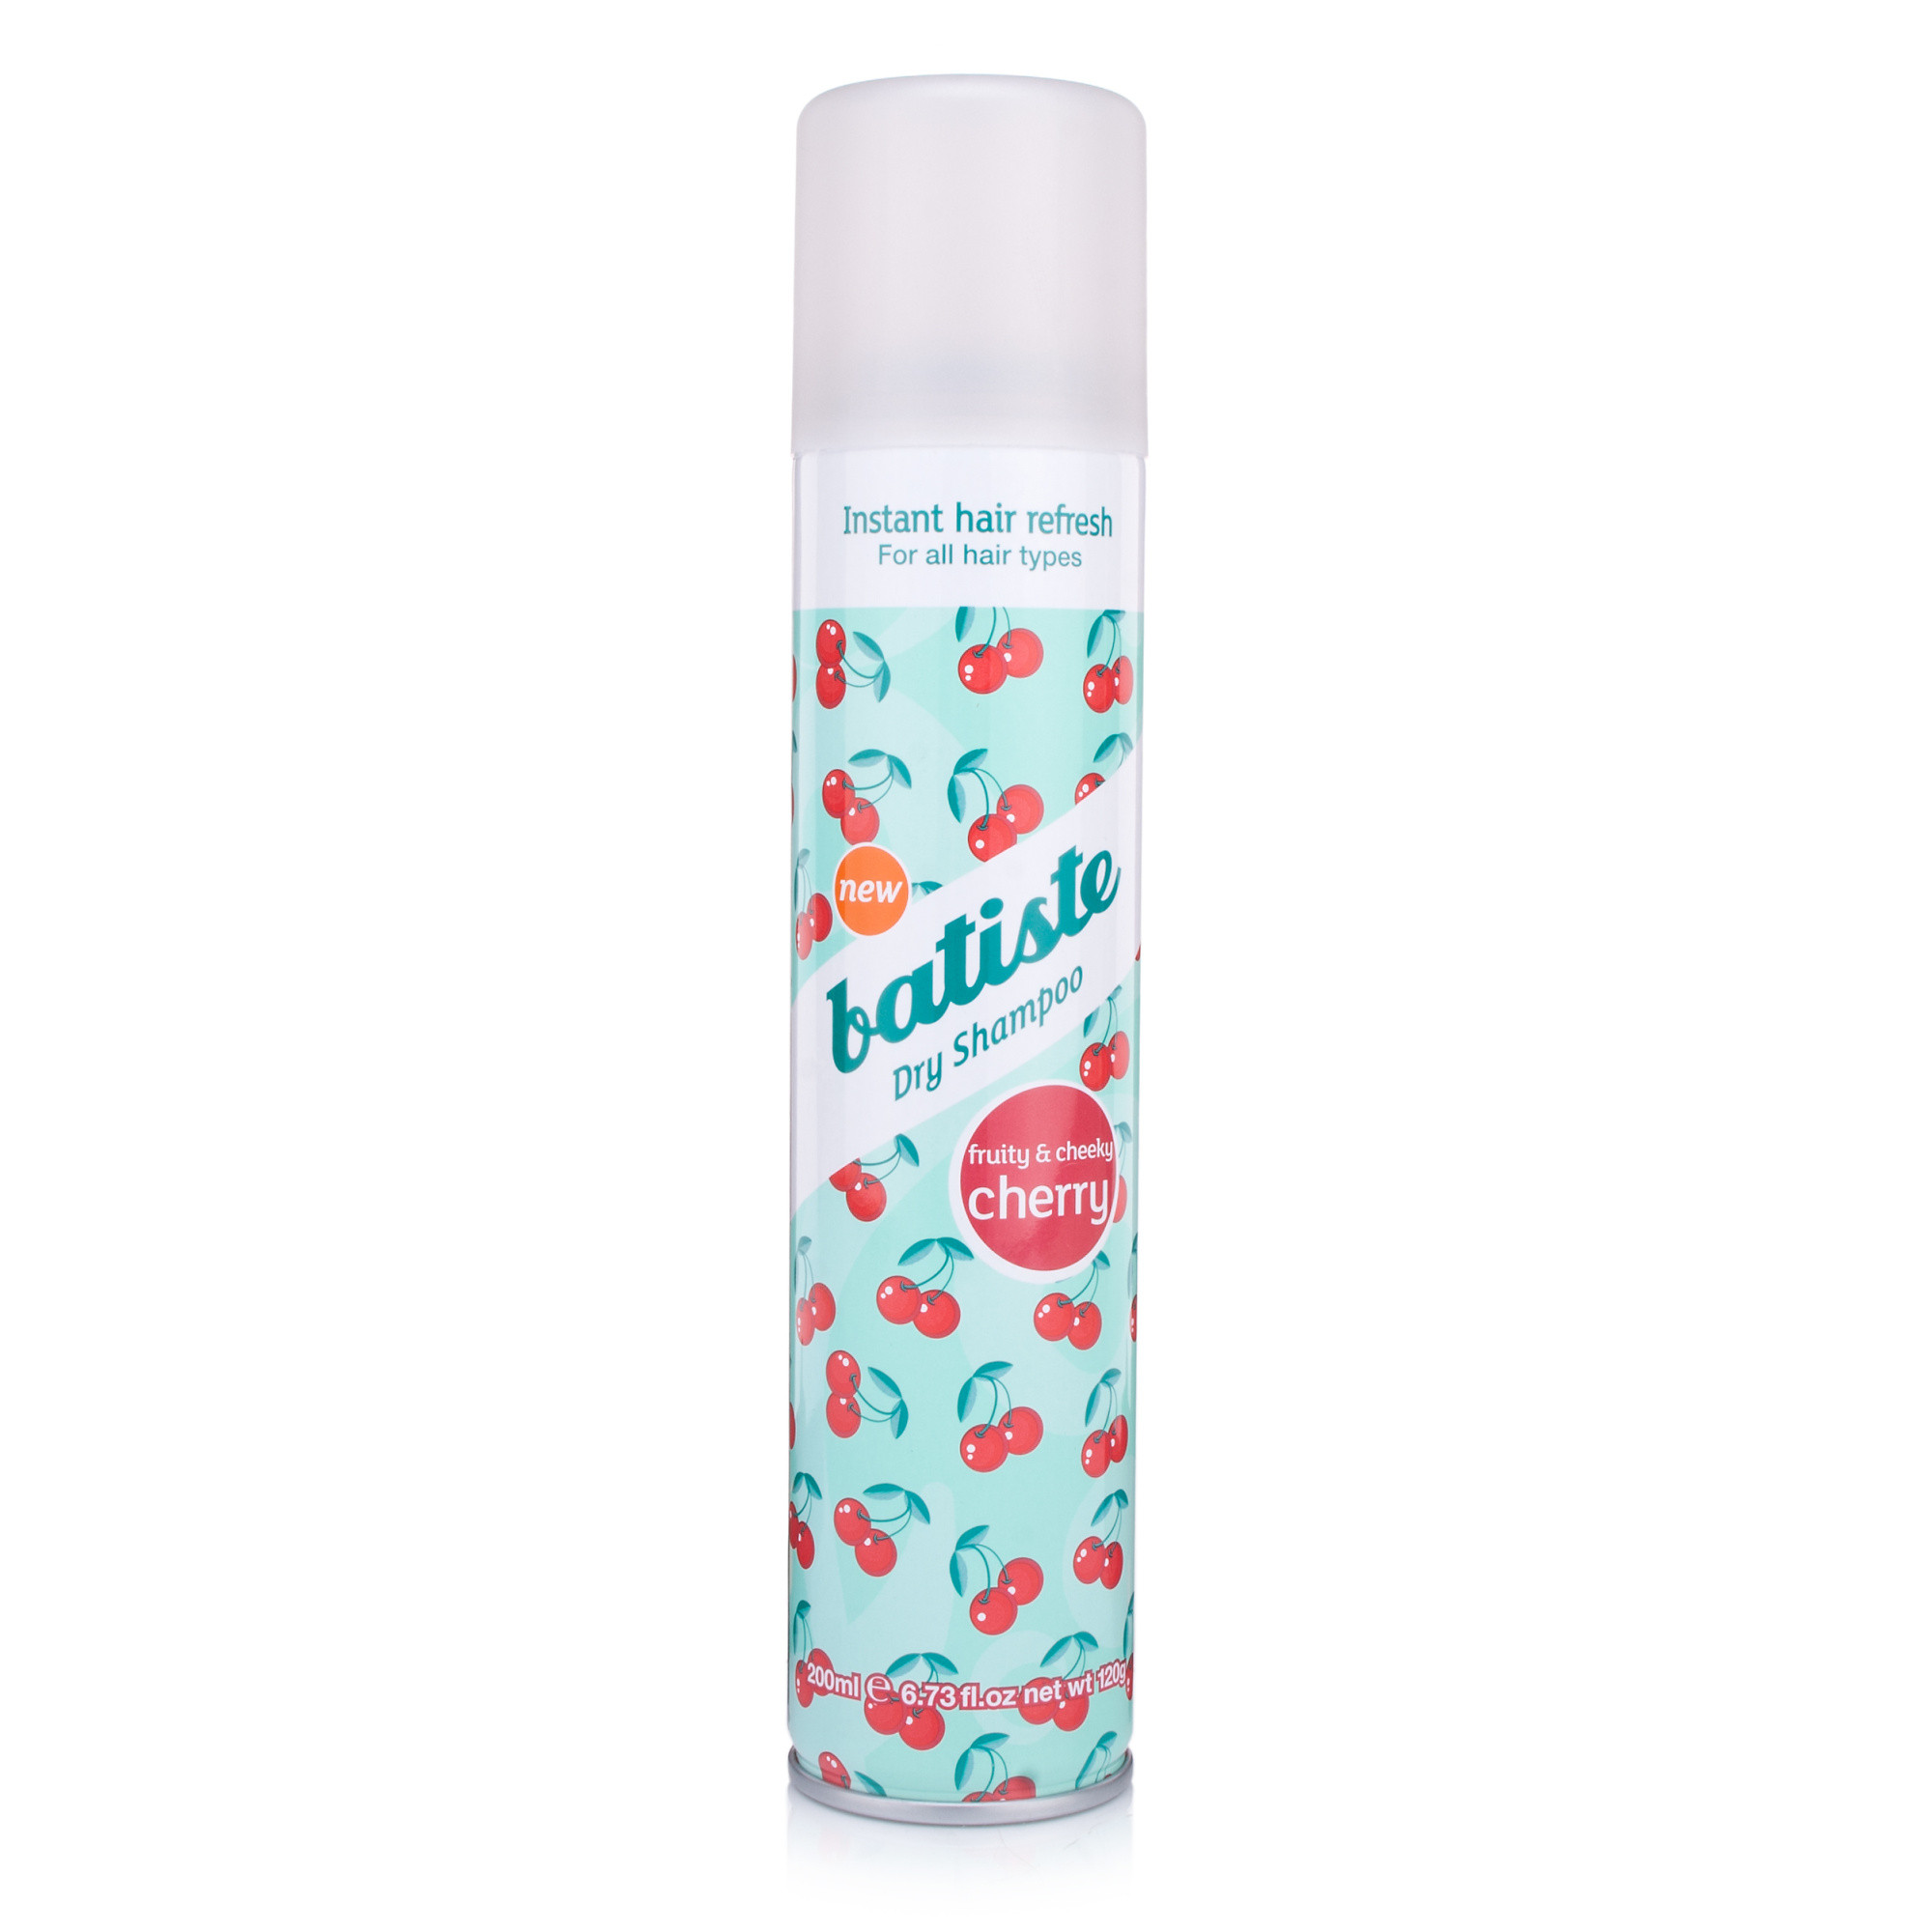 Image of Batiste Dry Shampoo Fruity & Cheeky Cherry